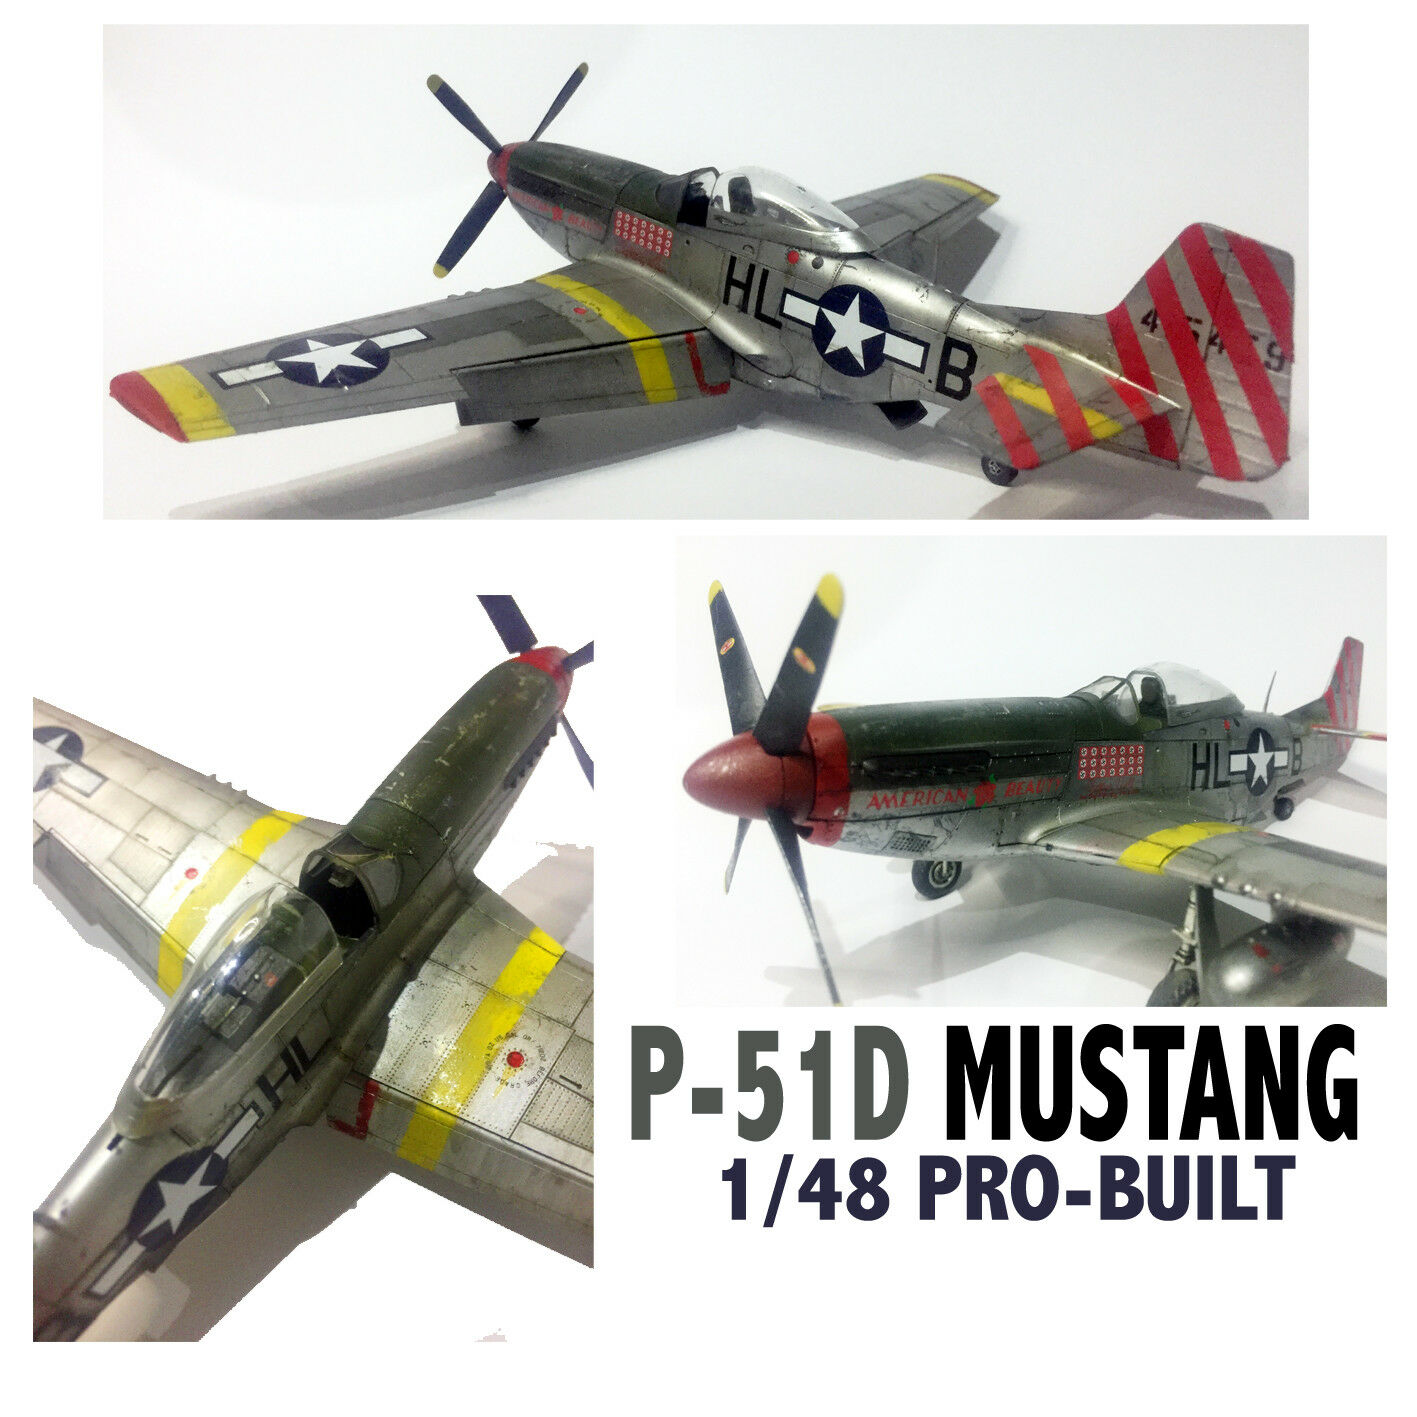 P-51D Mustang USAAF WWII Aircraft 1 48 Pro-Built and Painted